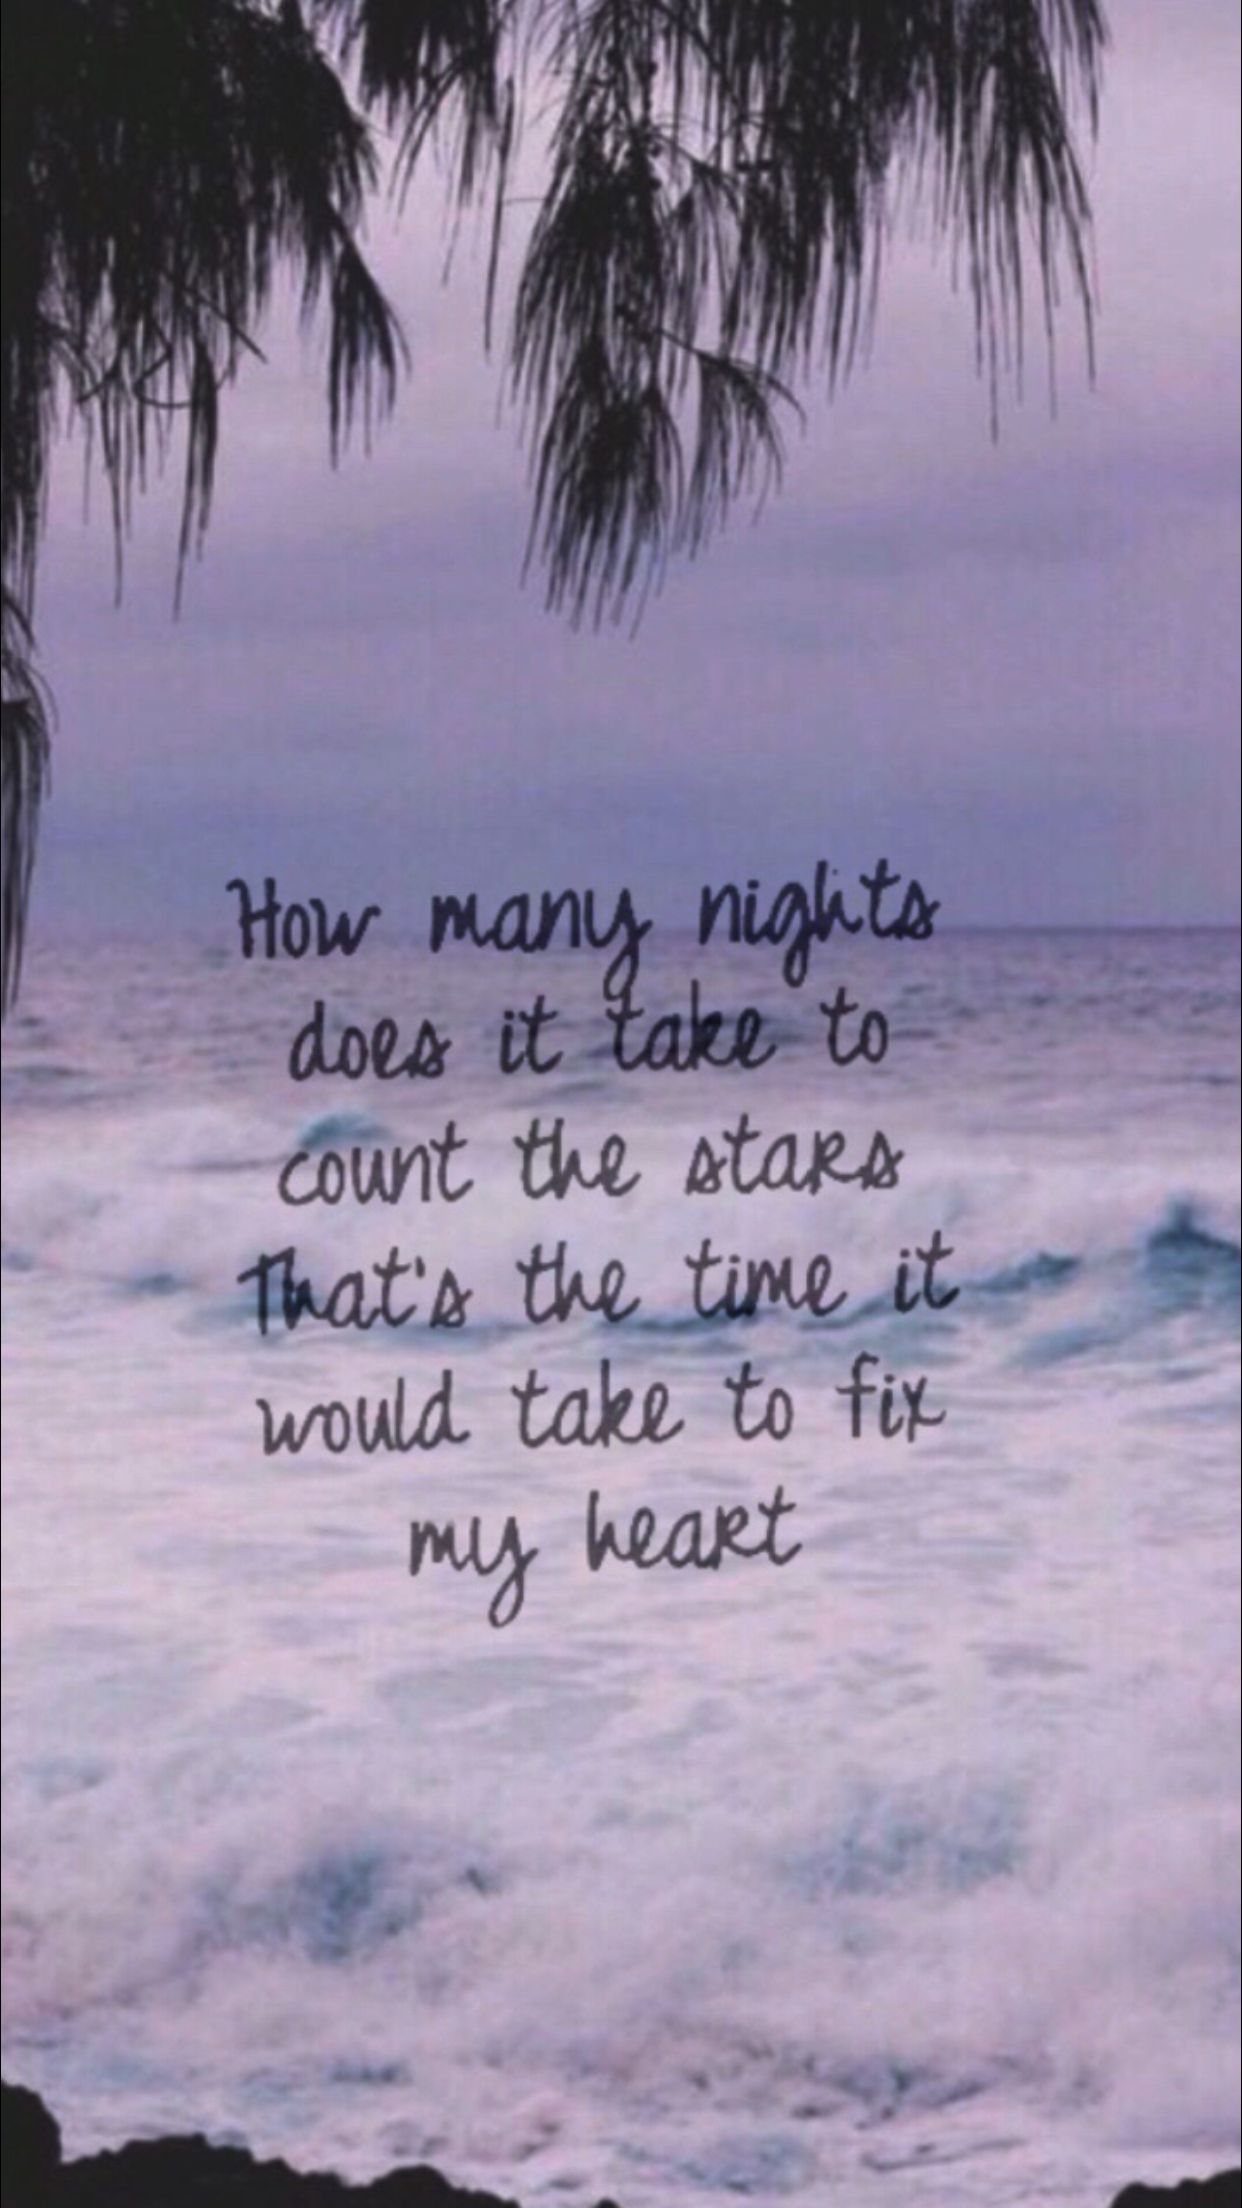 How many nights does it take to count the stars / That's